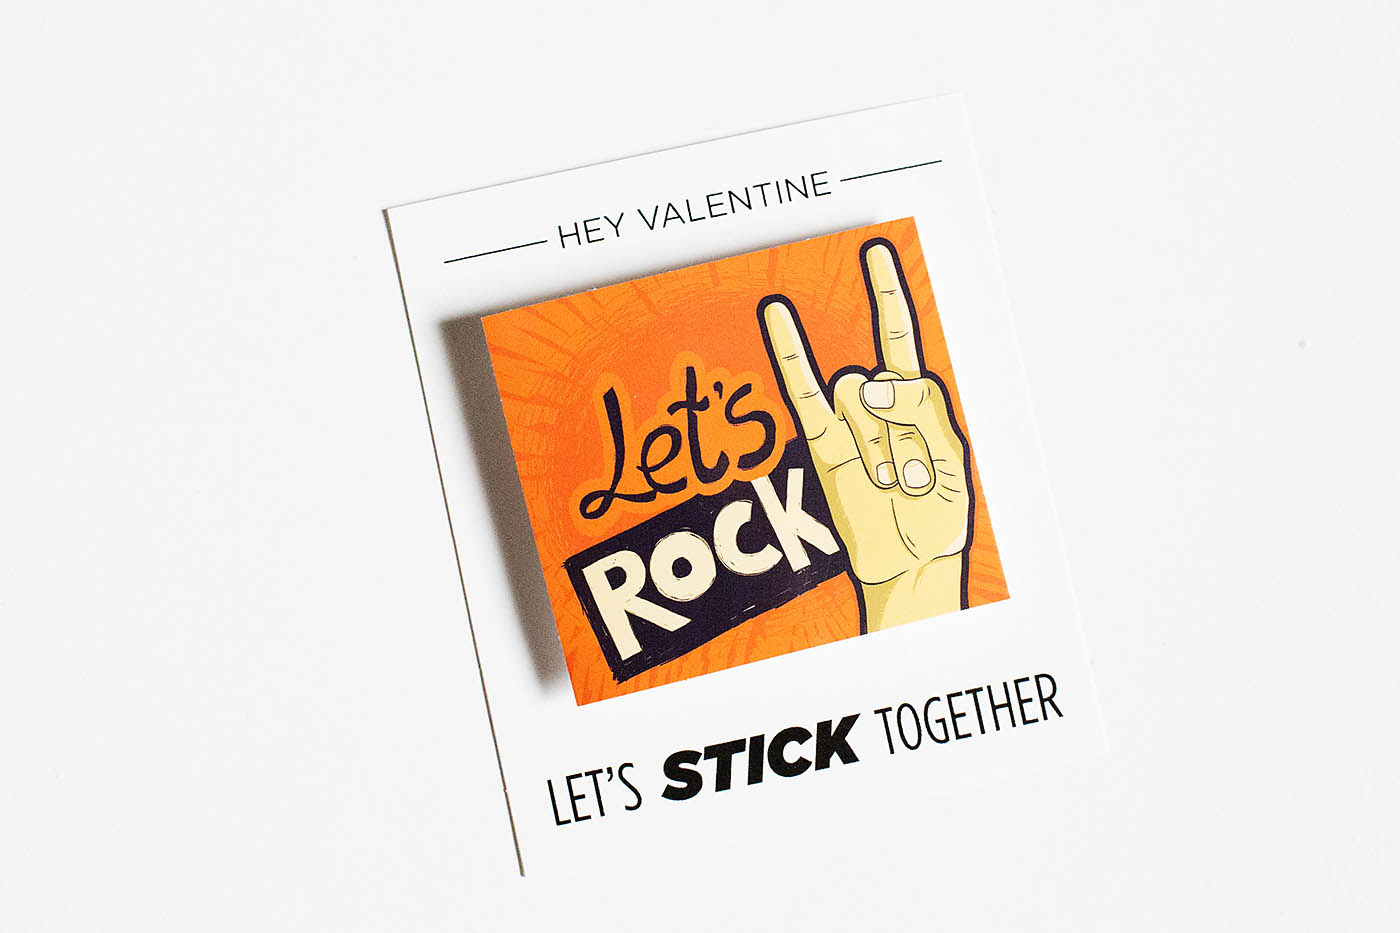 Let's stick together Valentine's card to add stickers to